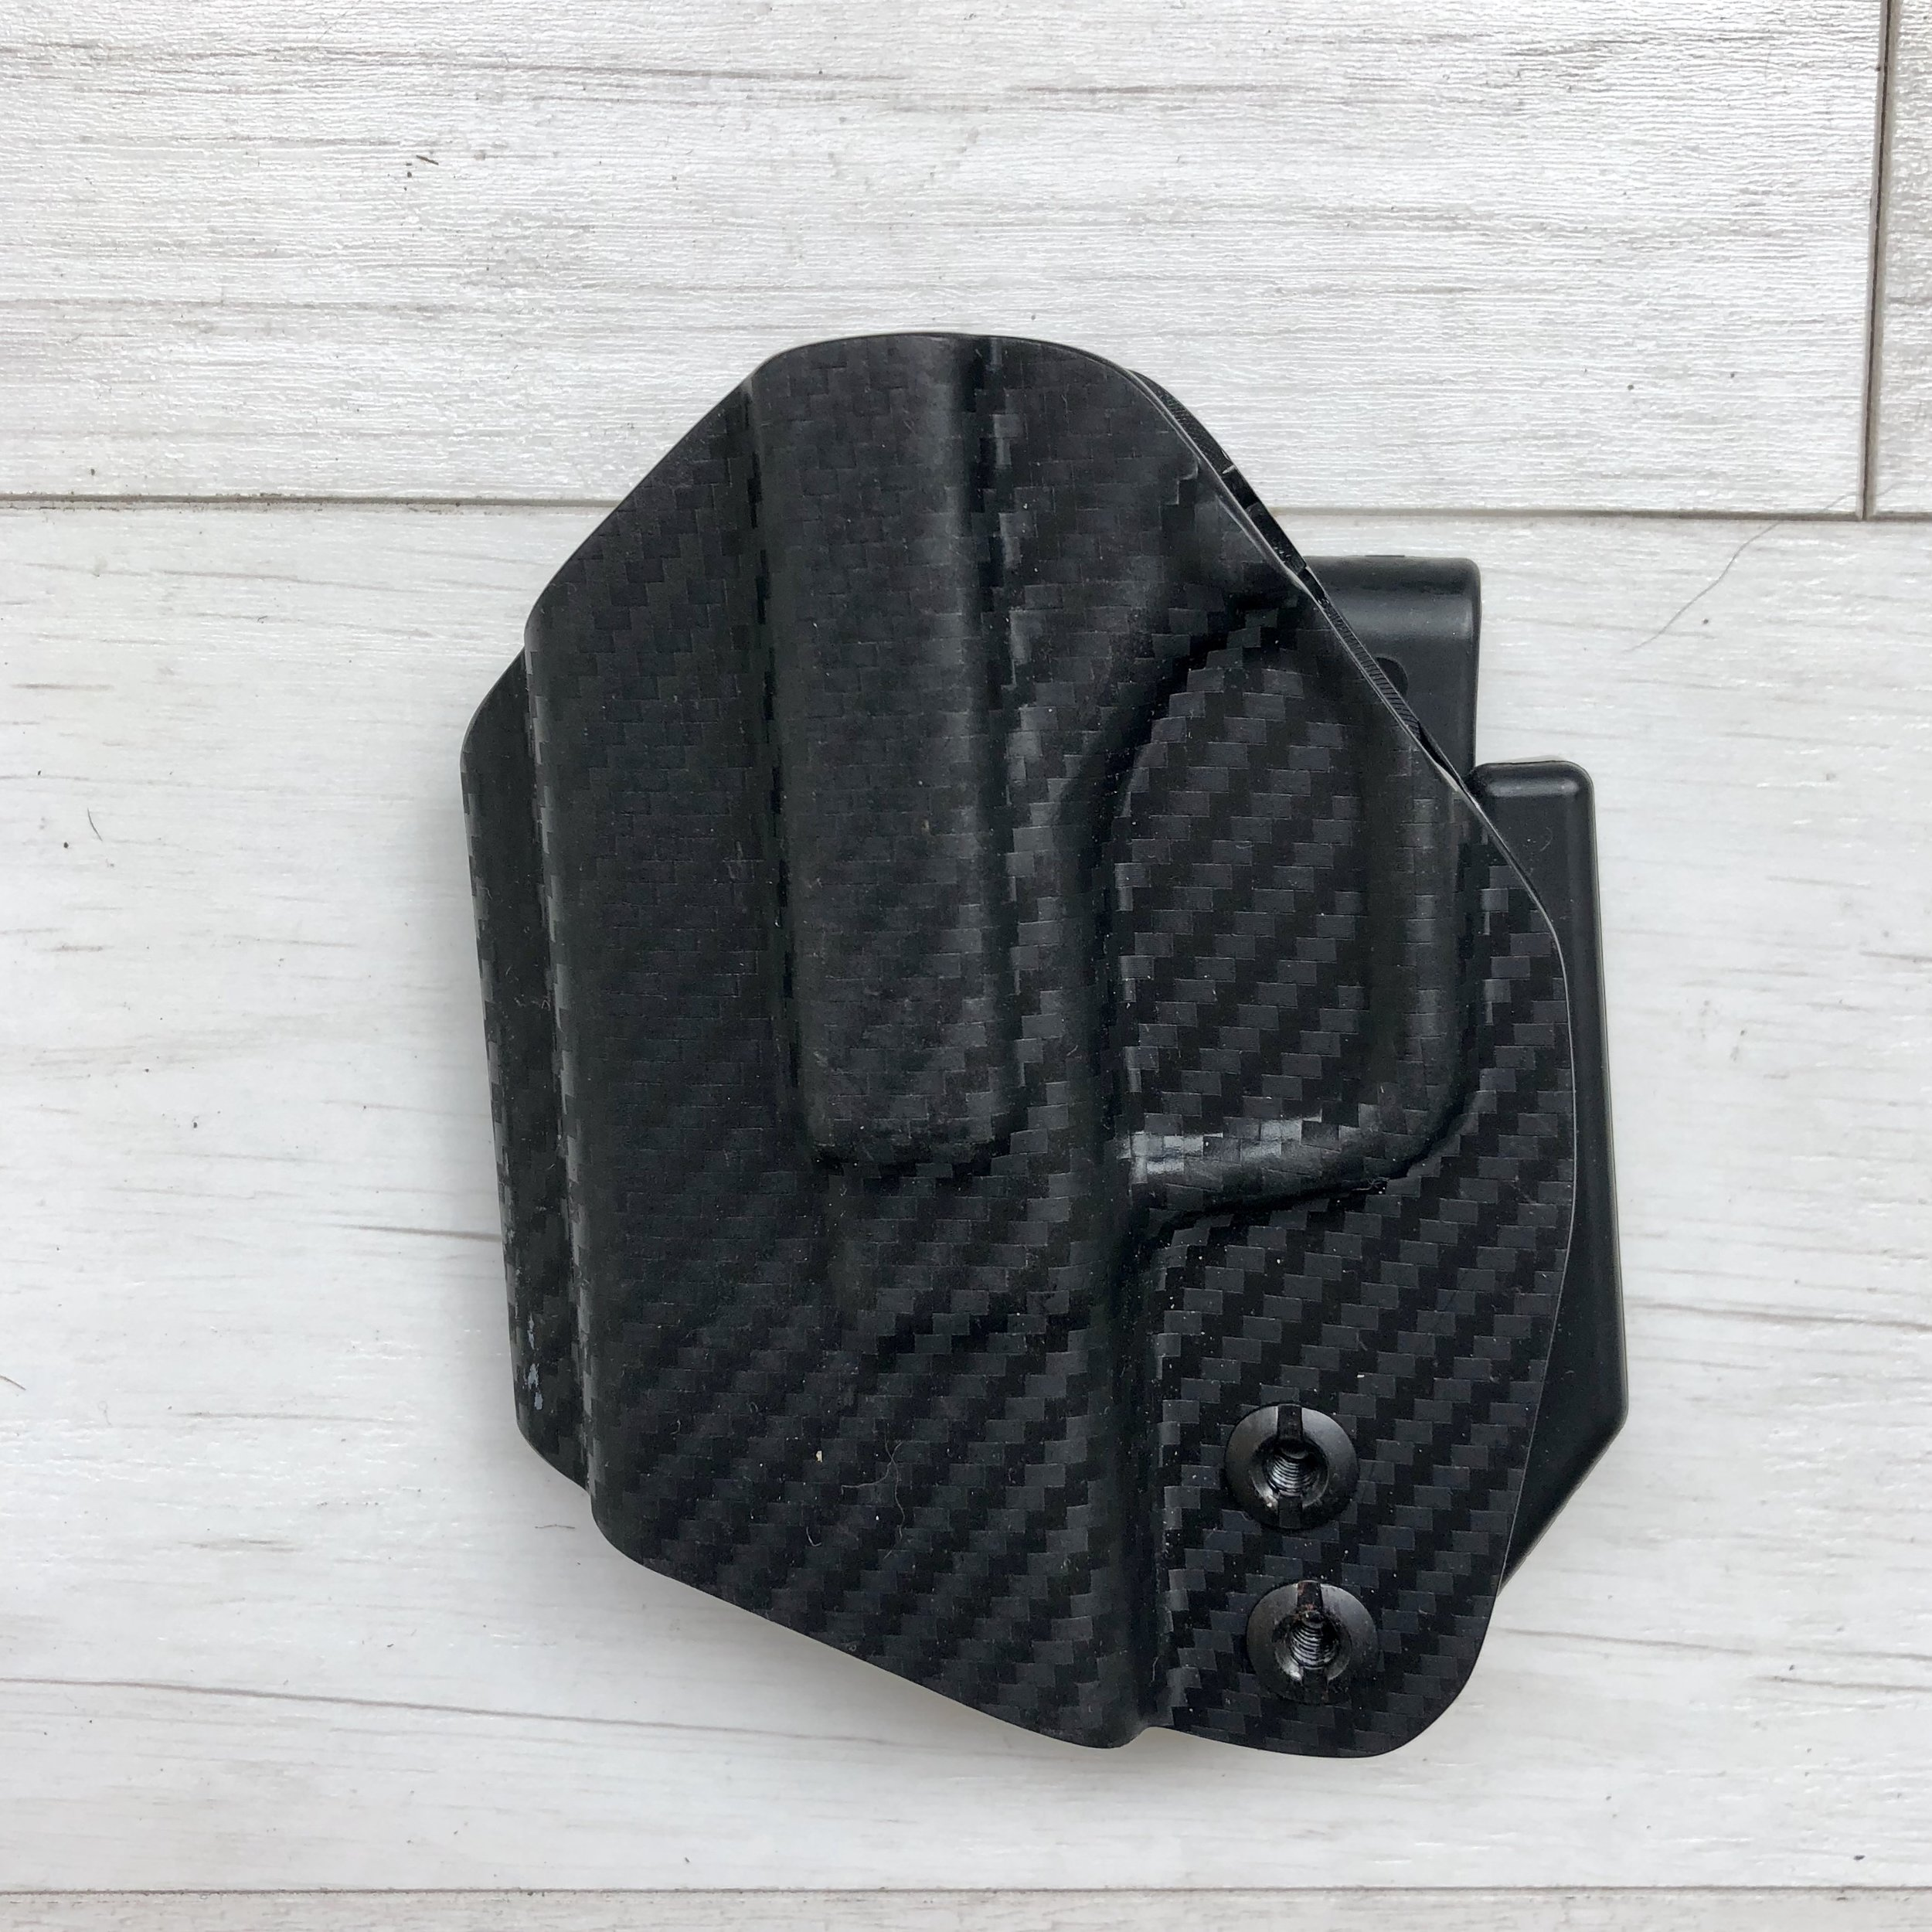 Micro Rig IWB Holster from Blacksmith Tactical, $50